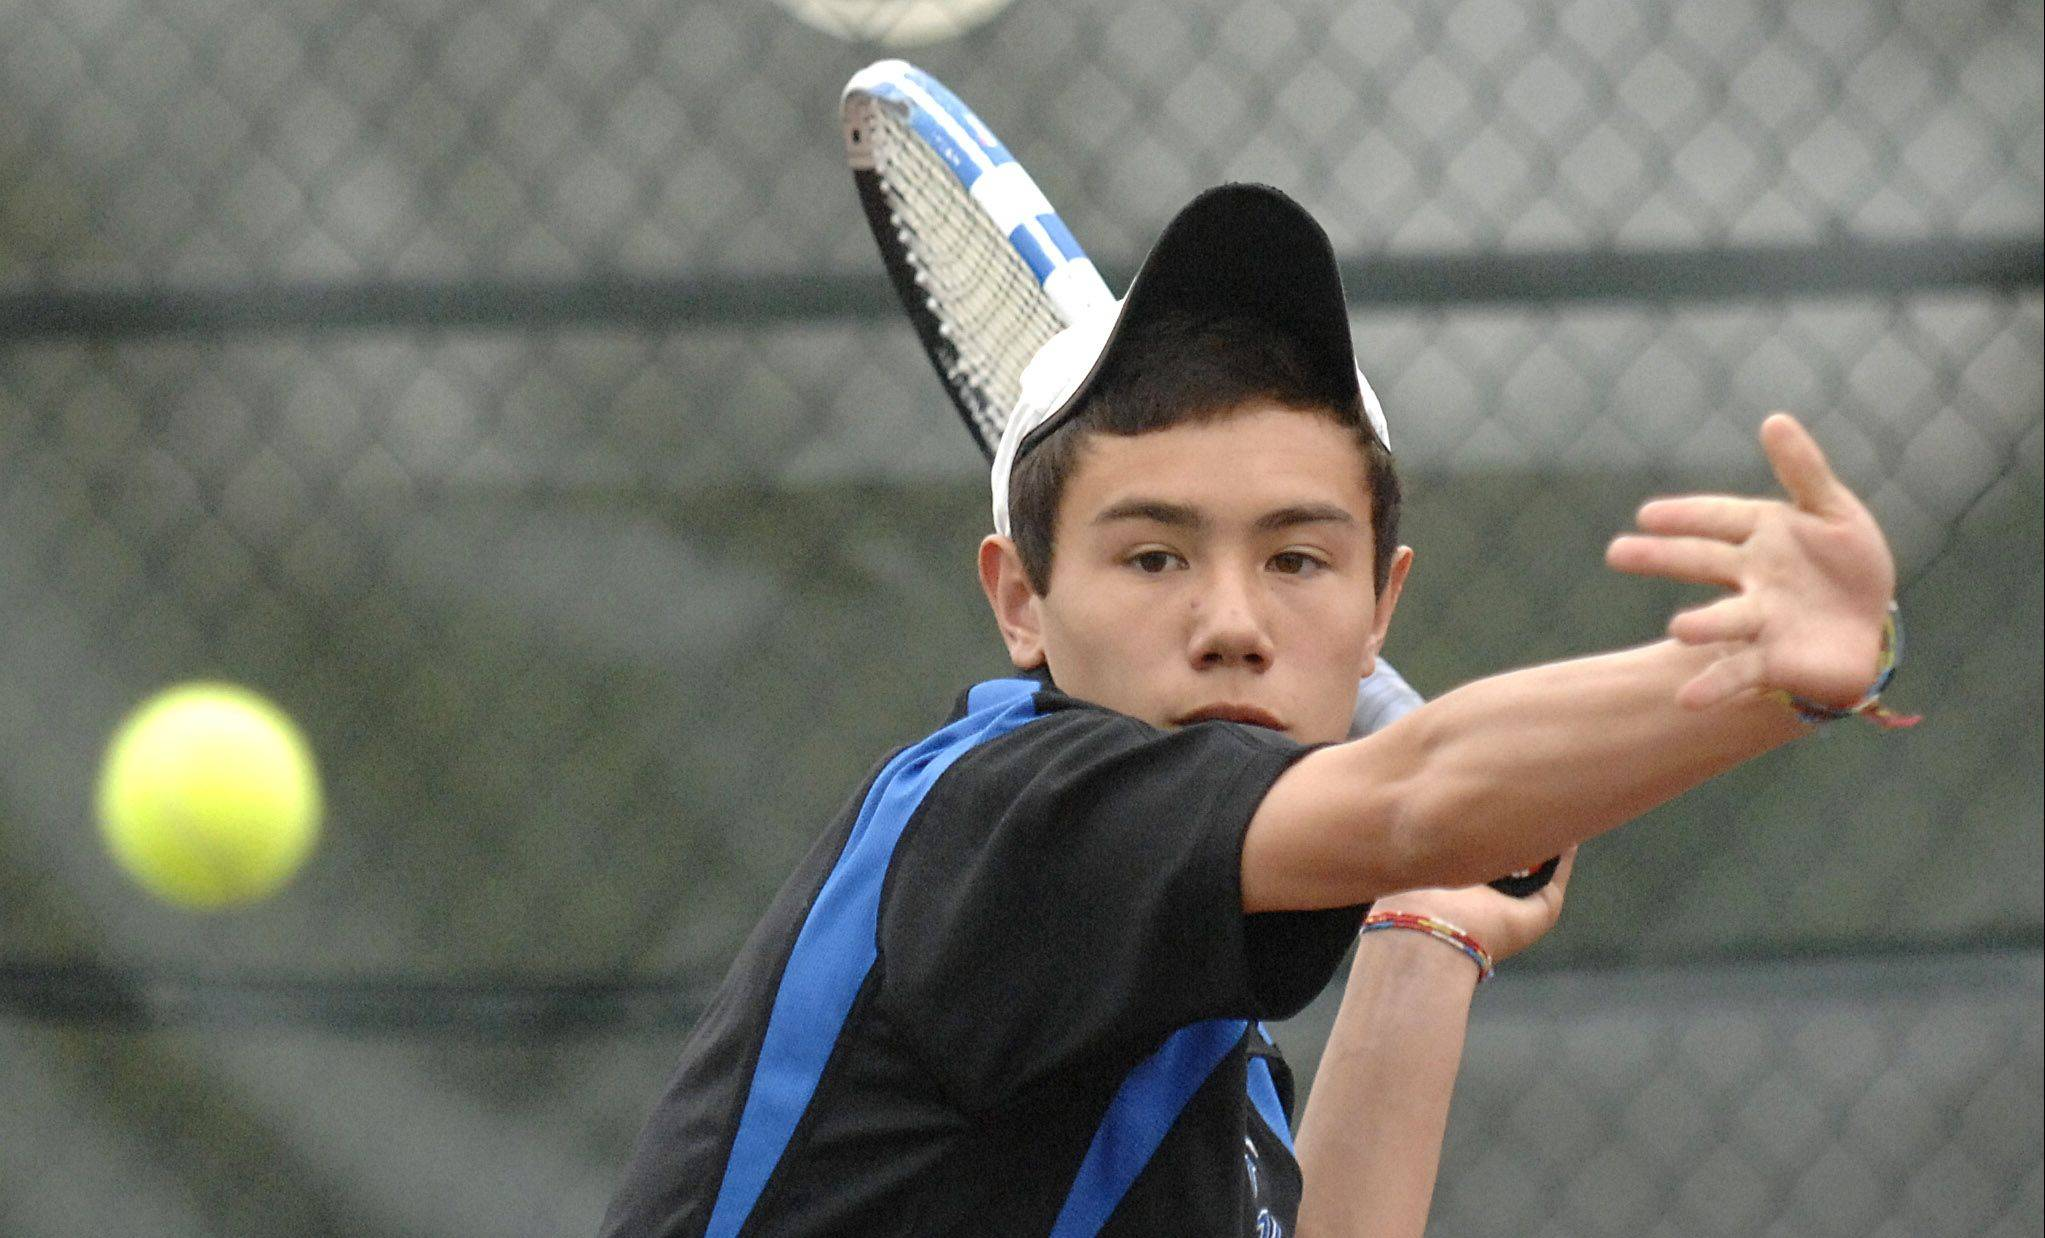 Geneva's Nick Huang returns a sever from IMSA's Suraj Sinha in a second singles match on Saturday, April 14.